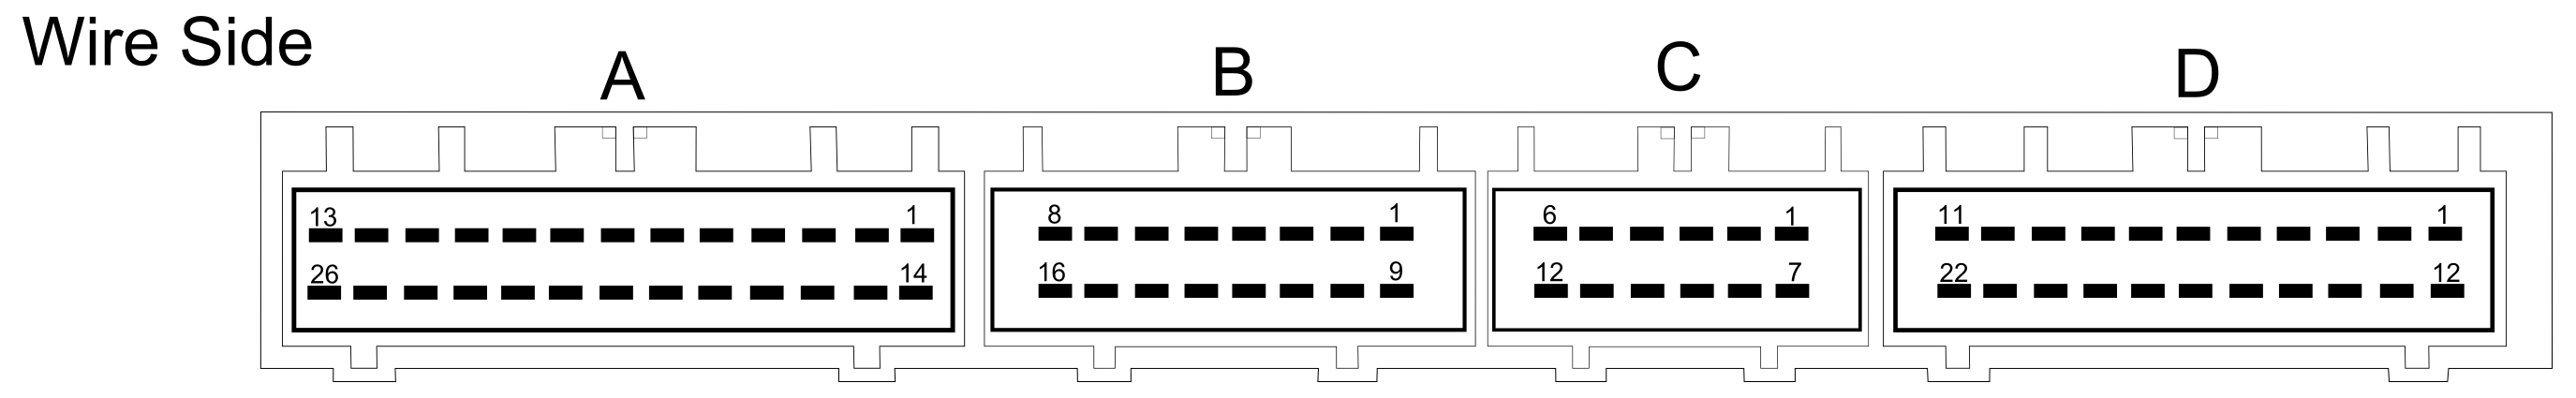 Perfectpower Wiring Diagrams For Volvo S40 V40 18 Gdi B4184sm Melco 1 Ecu Connector Of A Model Showing The Piggy Back Chip